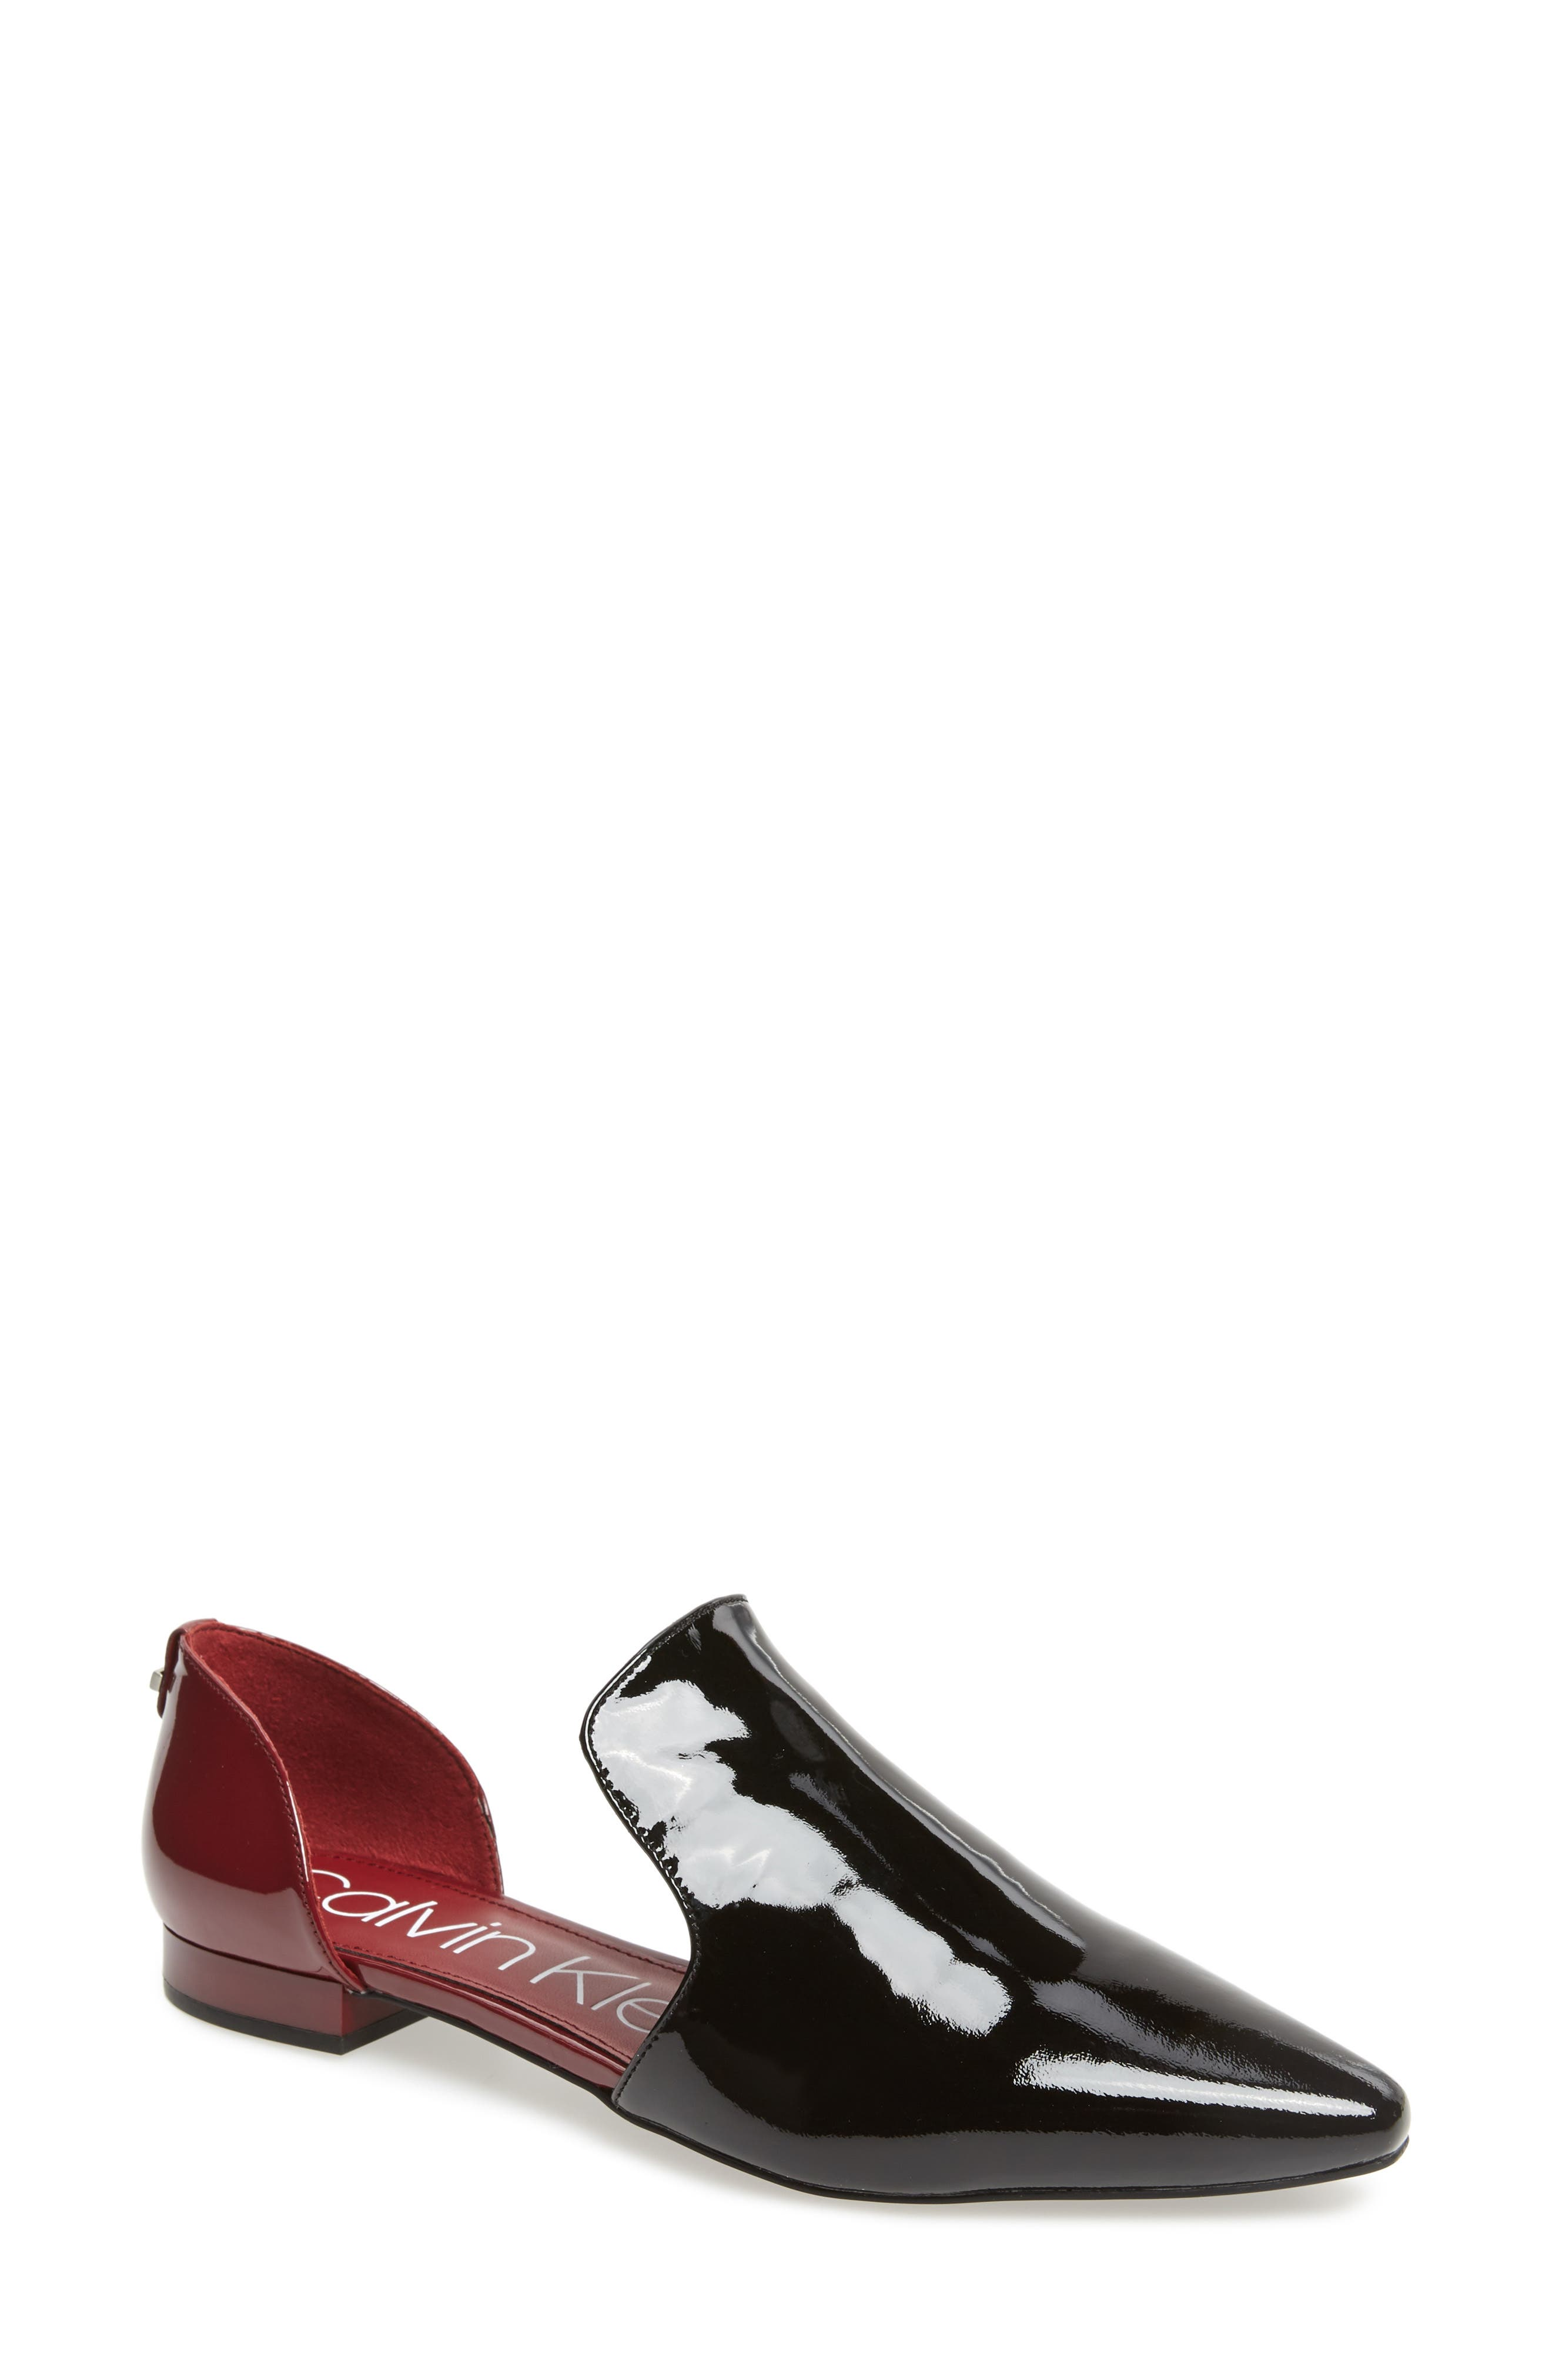 Edona Loafer Flat,                         Main,                         color, BLACK/ RED ROCK PATENT